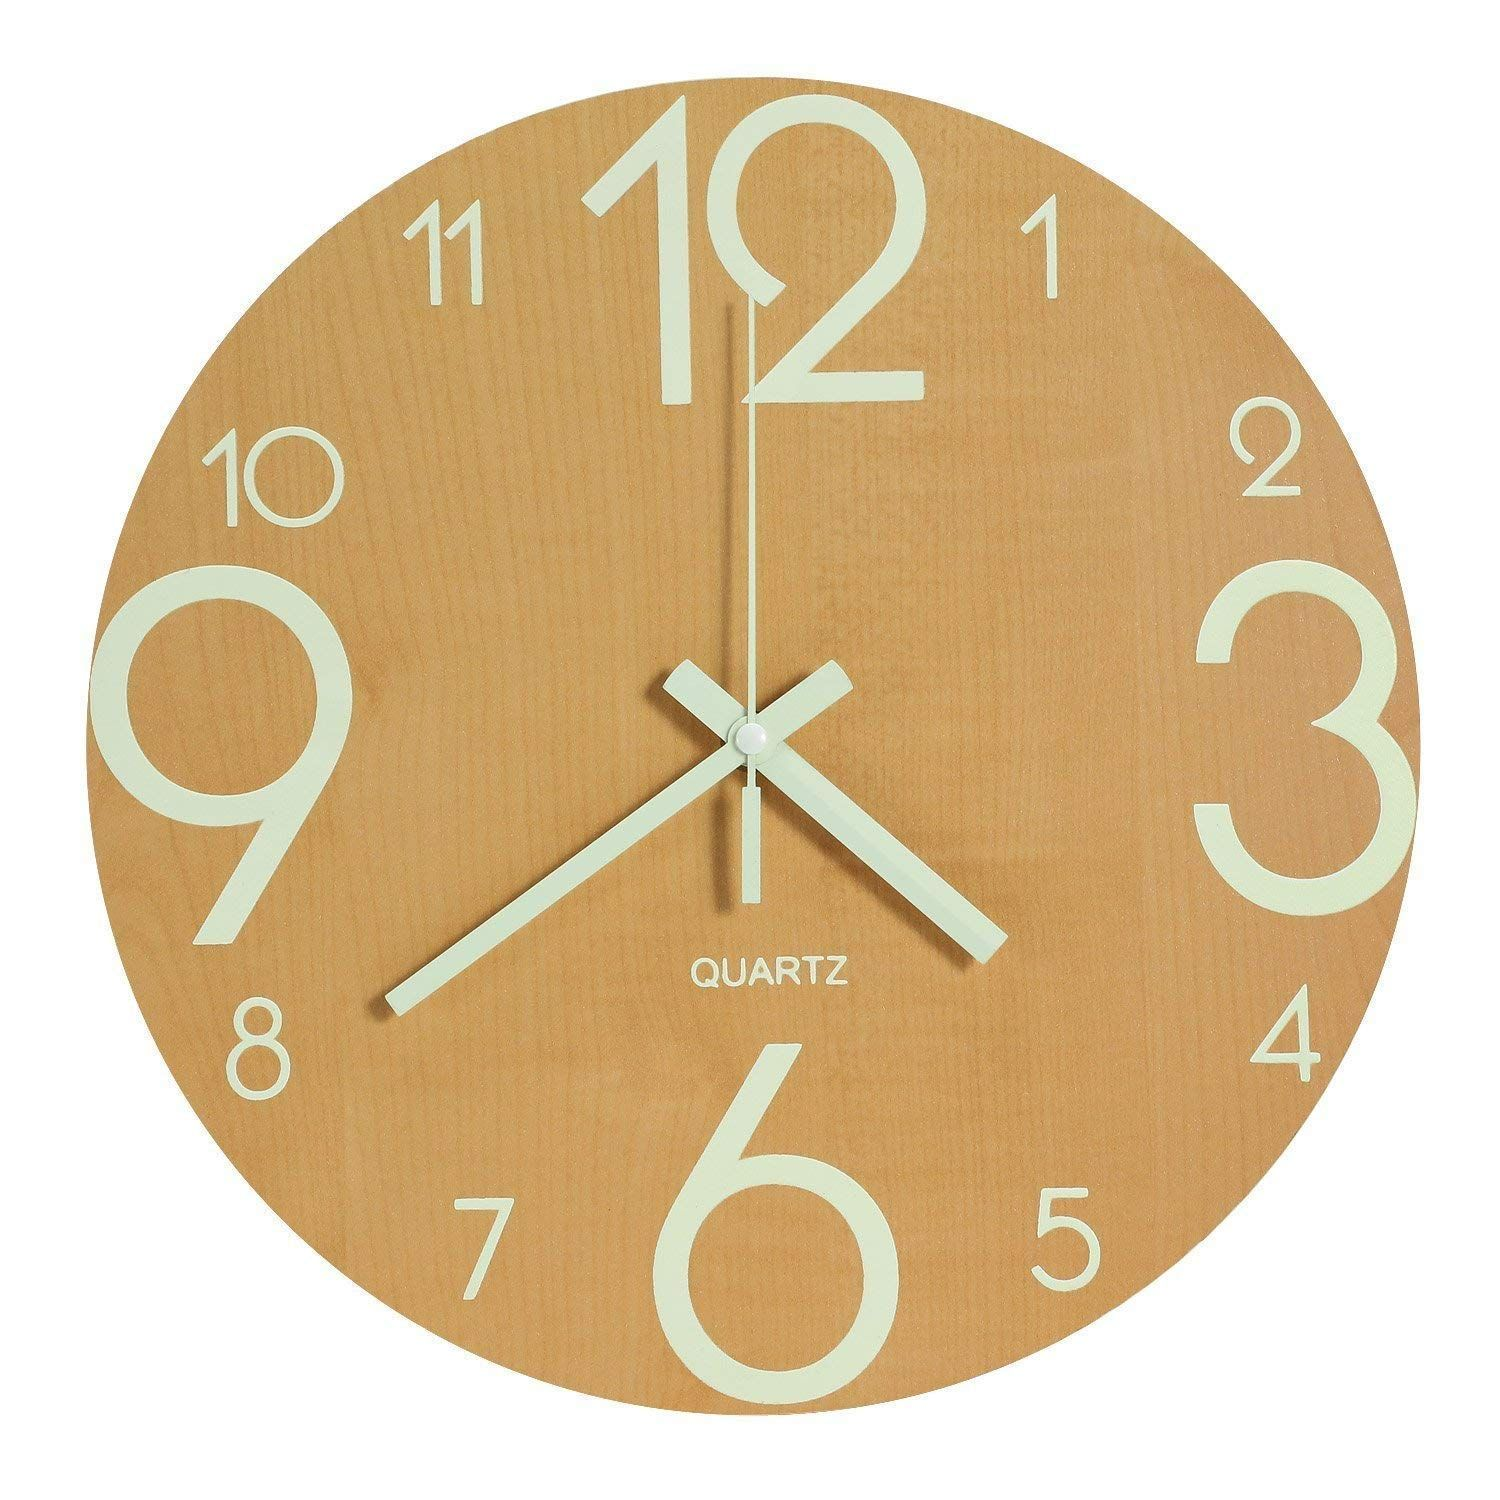 Genbaly Luminous Wall Clock 12 Inch Wooden Silent Non Ticking Kitchen Wall Clocks With Night Lights For Indoor Outdoor Living Room Bedroom Decor Battery Operat Kitchen Wall Clocks Wall Clock Modern Indoor Outdoor